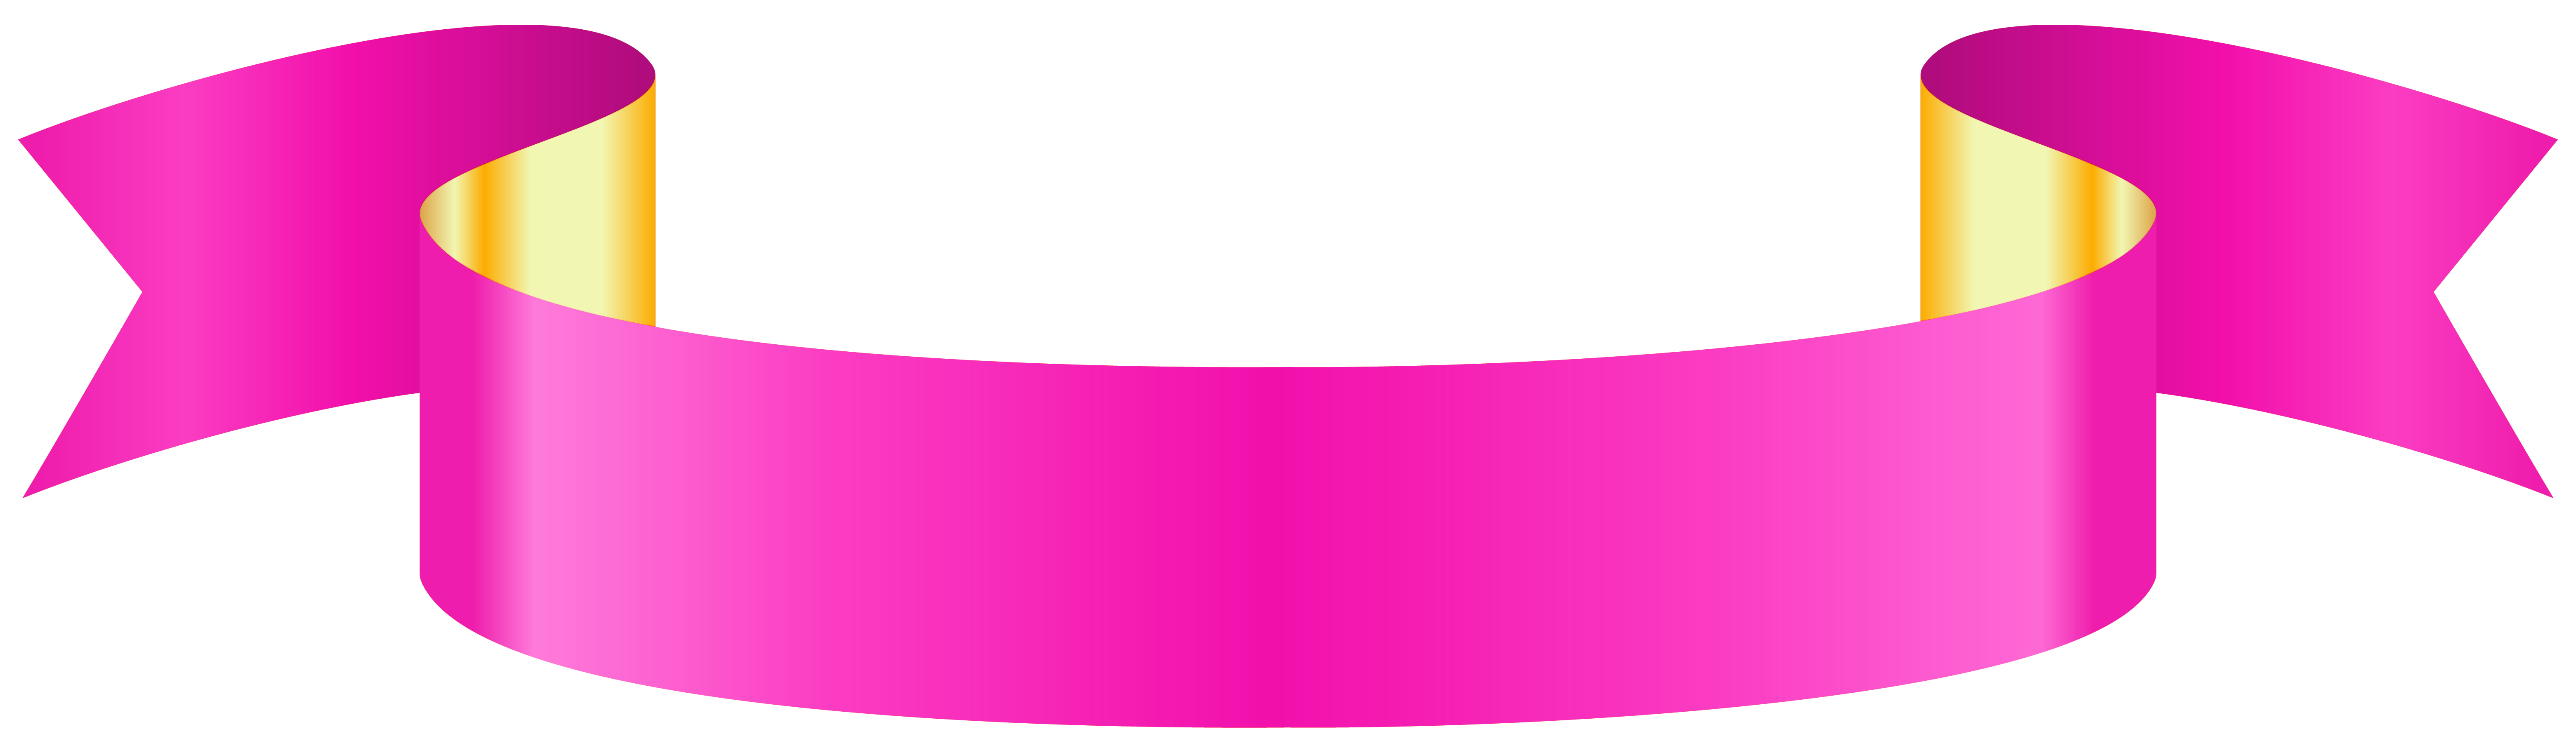 Banners clipart bow. Pink banner transparent png